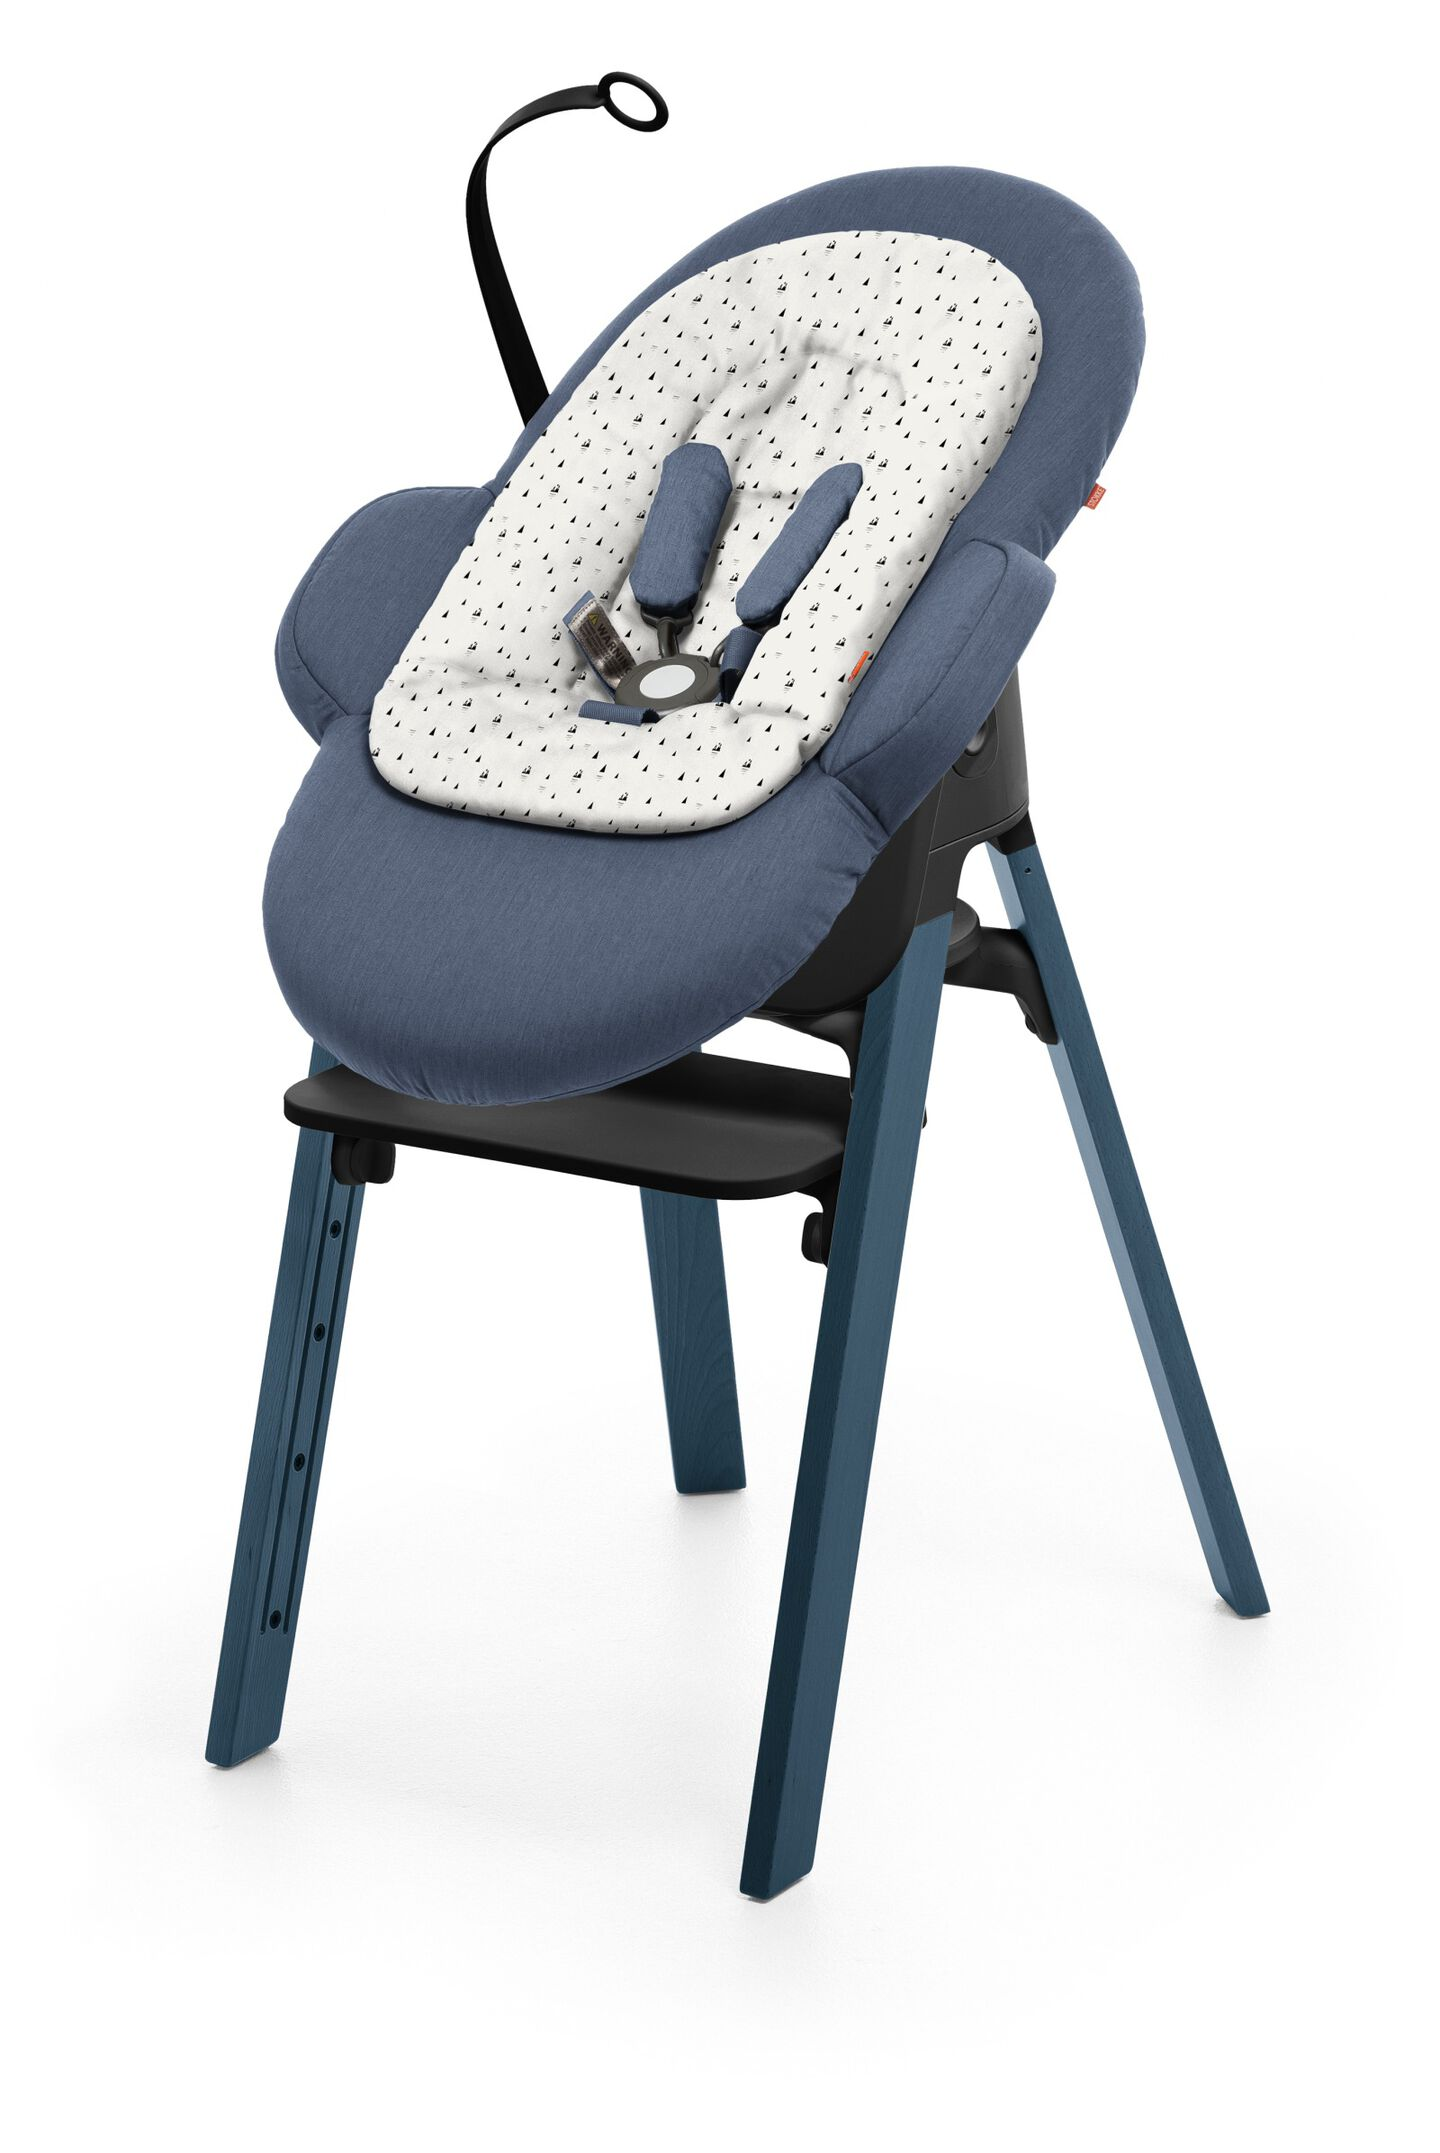 Stokke® Steps™ Midnight Blue with Black Seat and footrest. Bouncer Blue and White Mountain Newborn Insert.